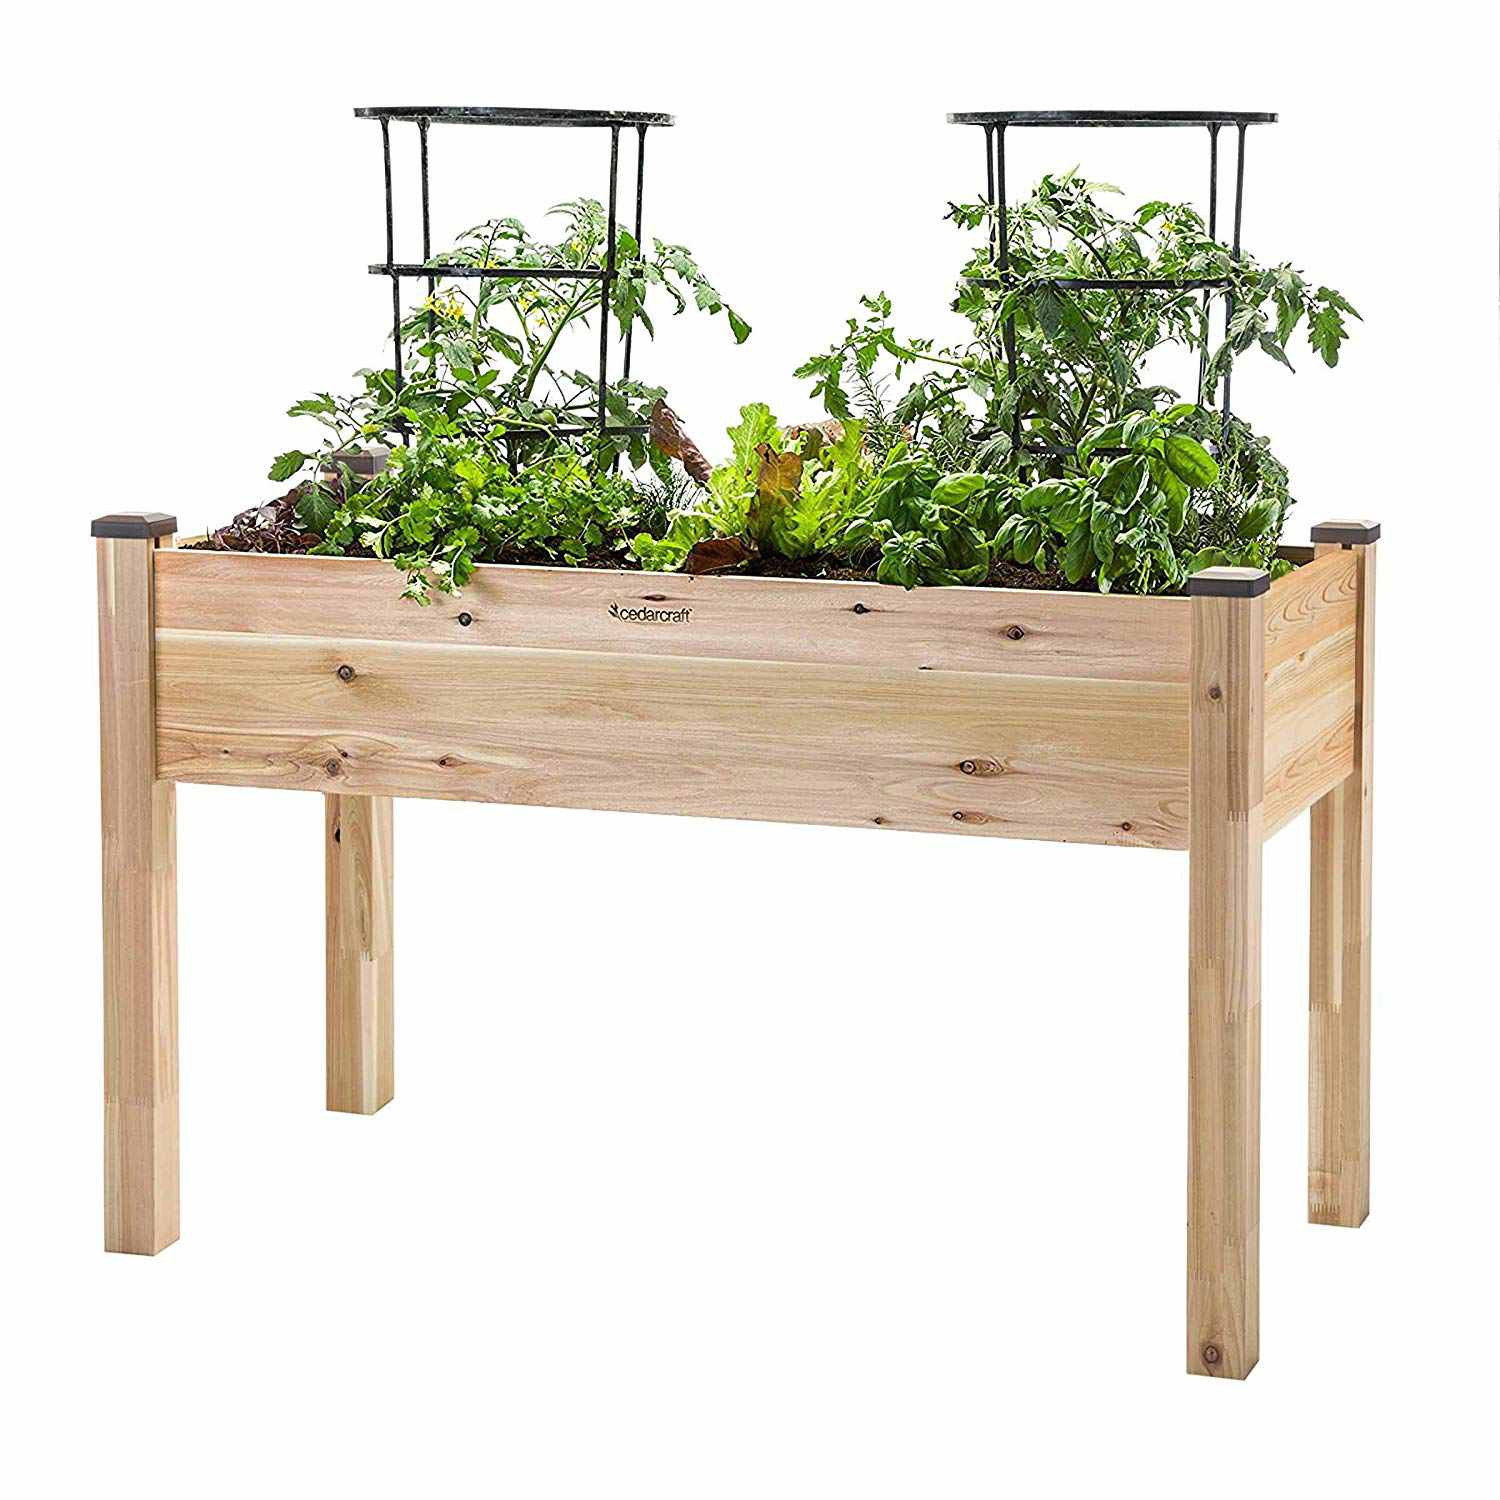 Elevated Planter—Amazon Mother's Day Gifts